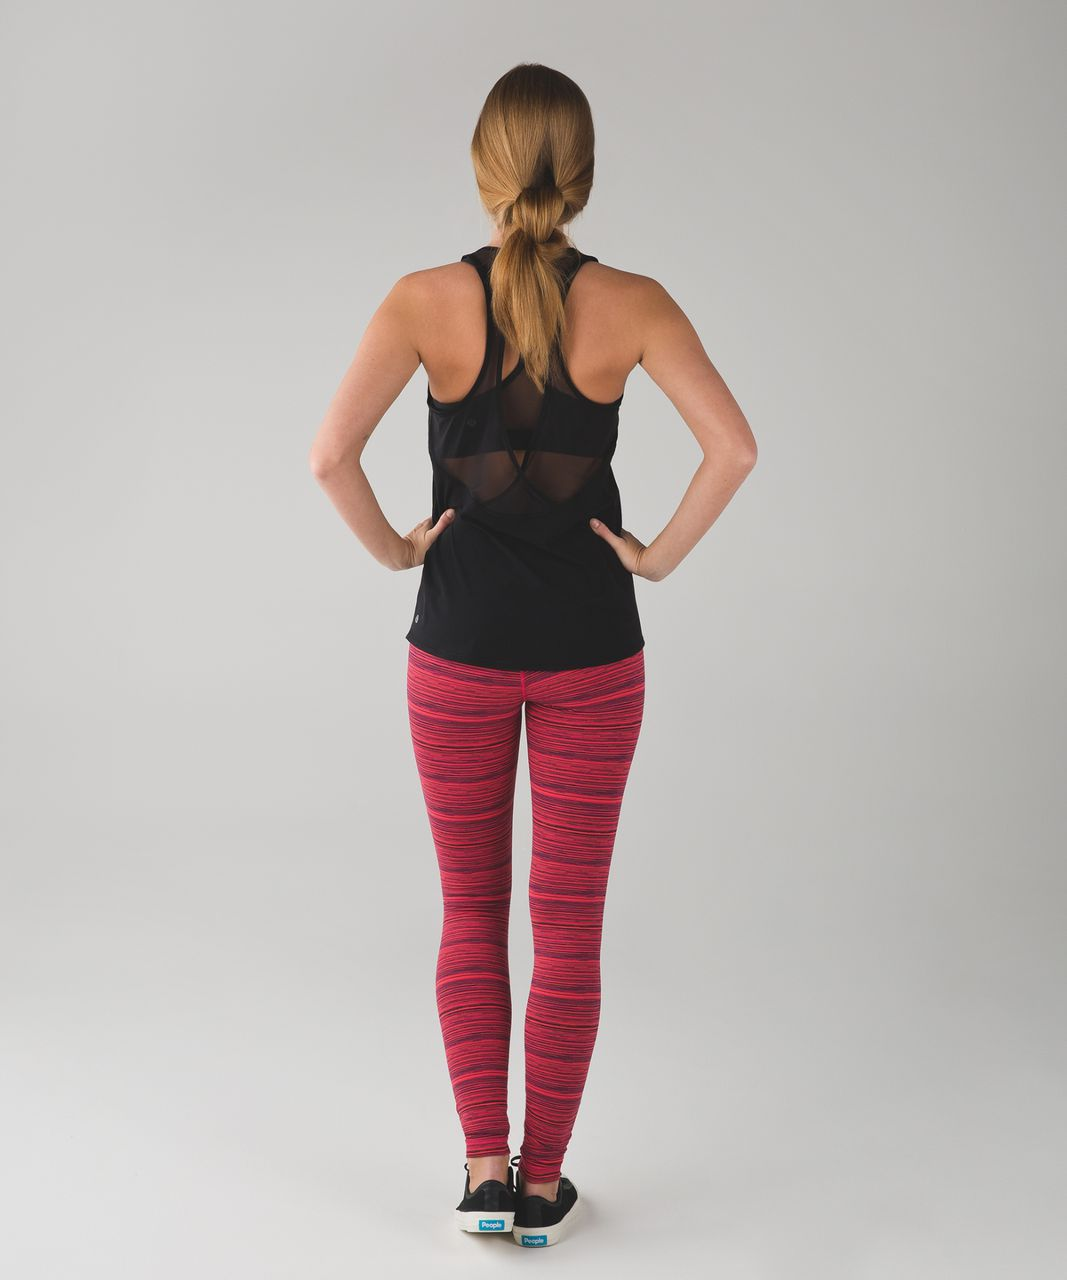 Lululemon Wunder Under Pant (Hi-Rise) - Cyber Boom Juice Alarming